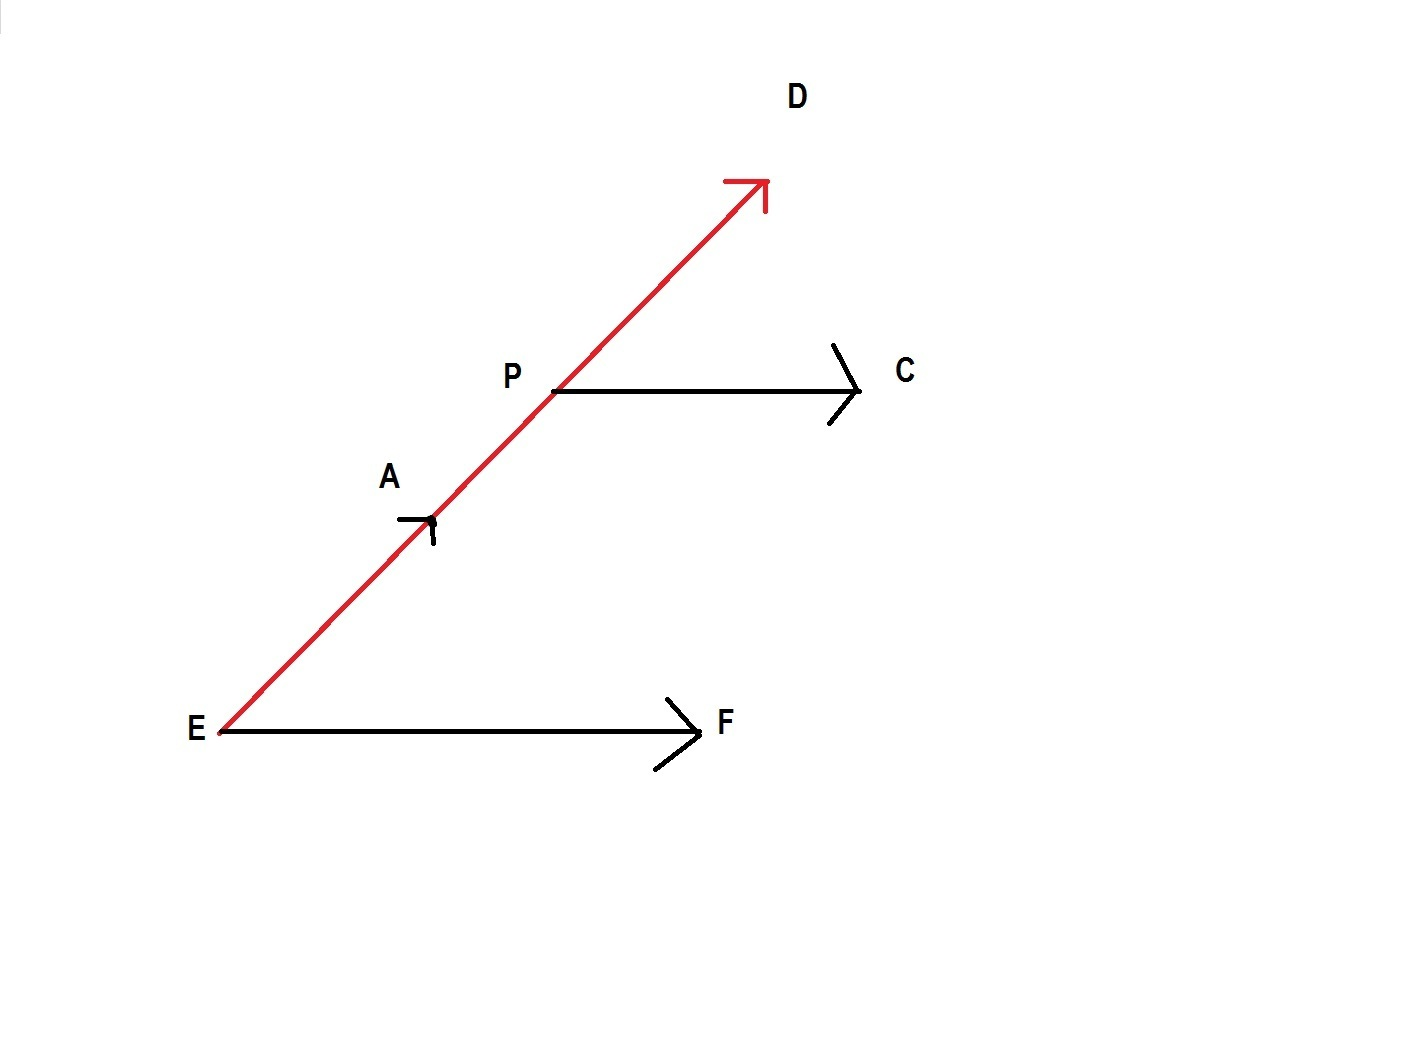 Draw A Diagram In Which The Intersection Of Angle Aef And Dpc How To Download